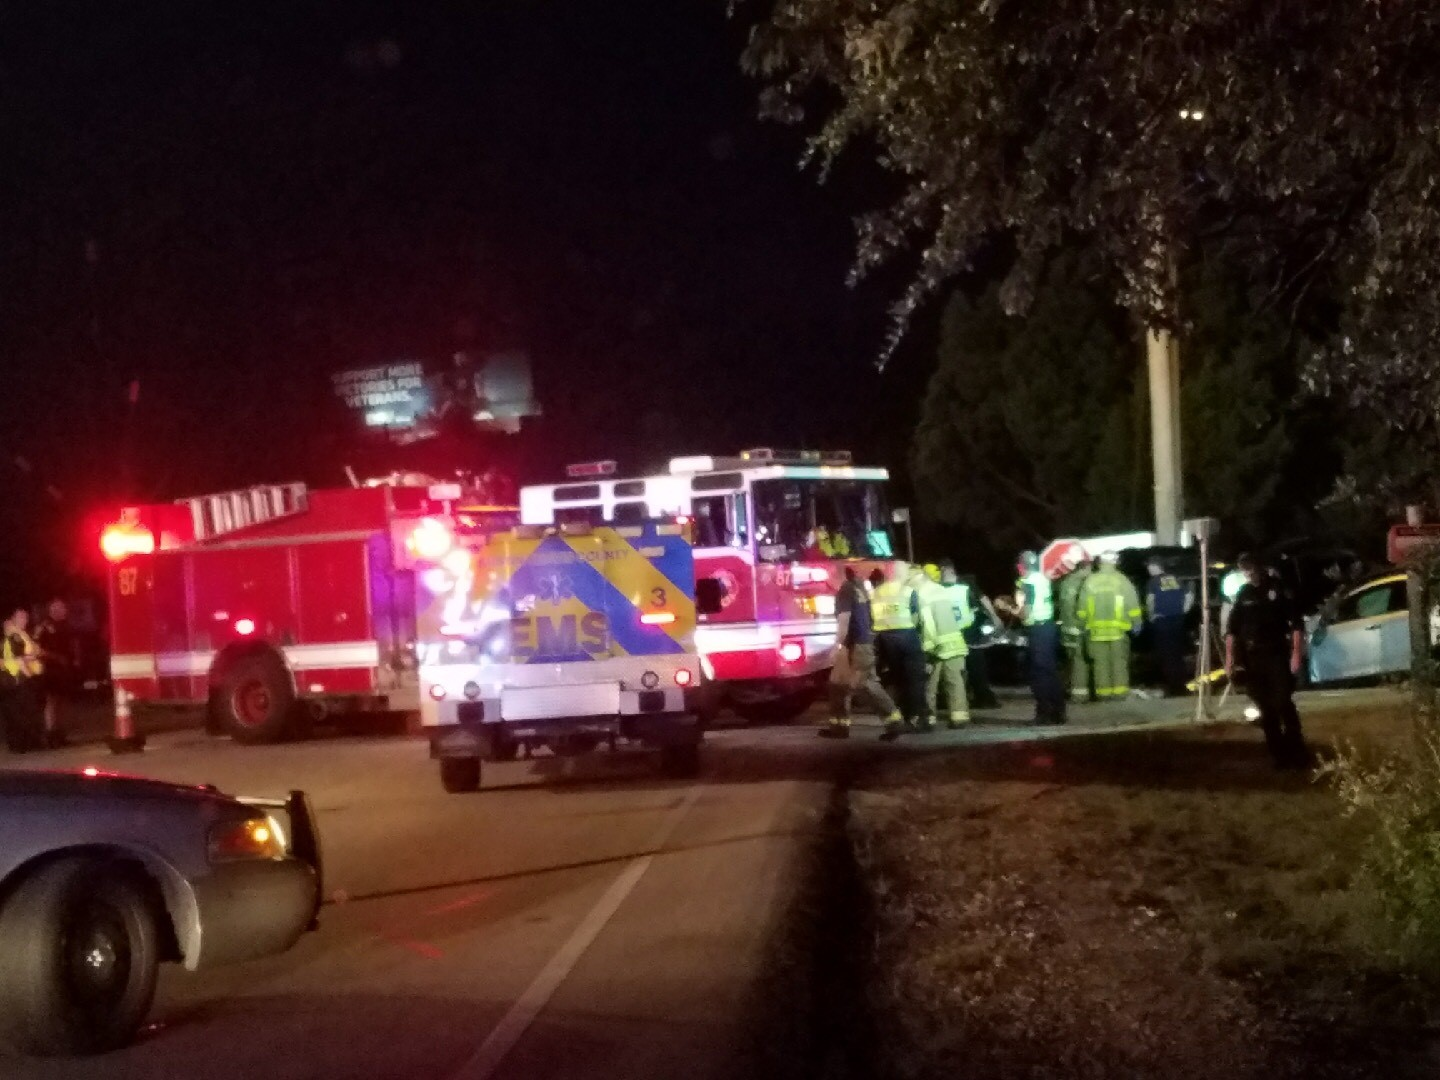 Two people were injured -- one of them critically -- in a traffic crash Thursday night in North Austin. (Photo courtesy: Marcos Carrillo)